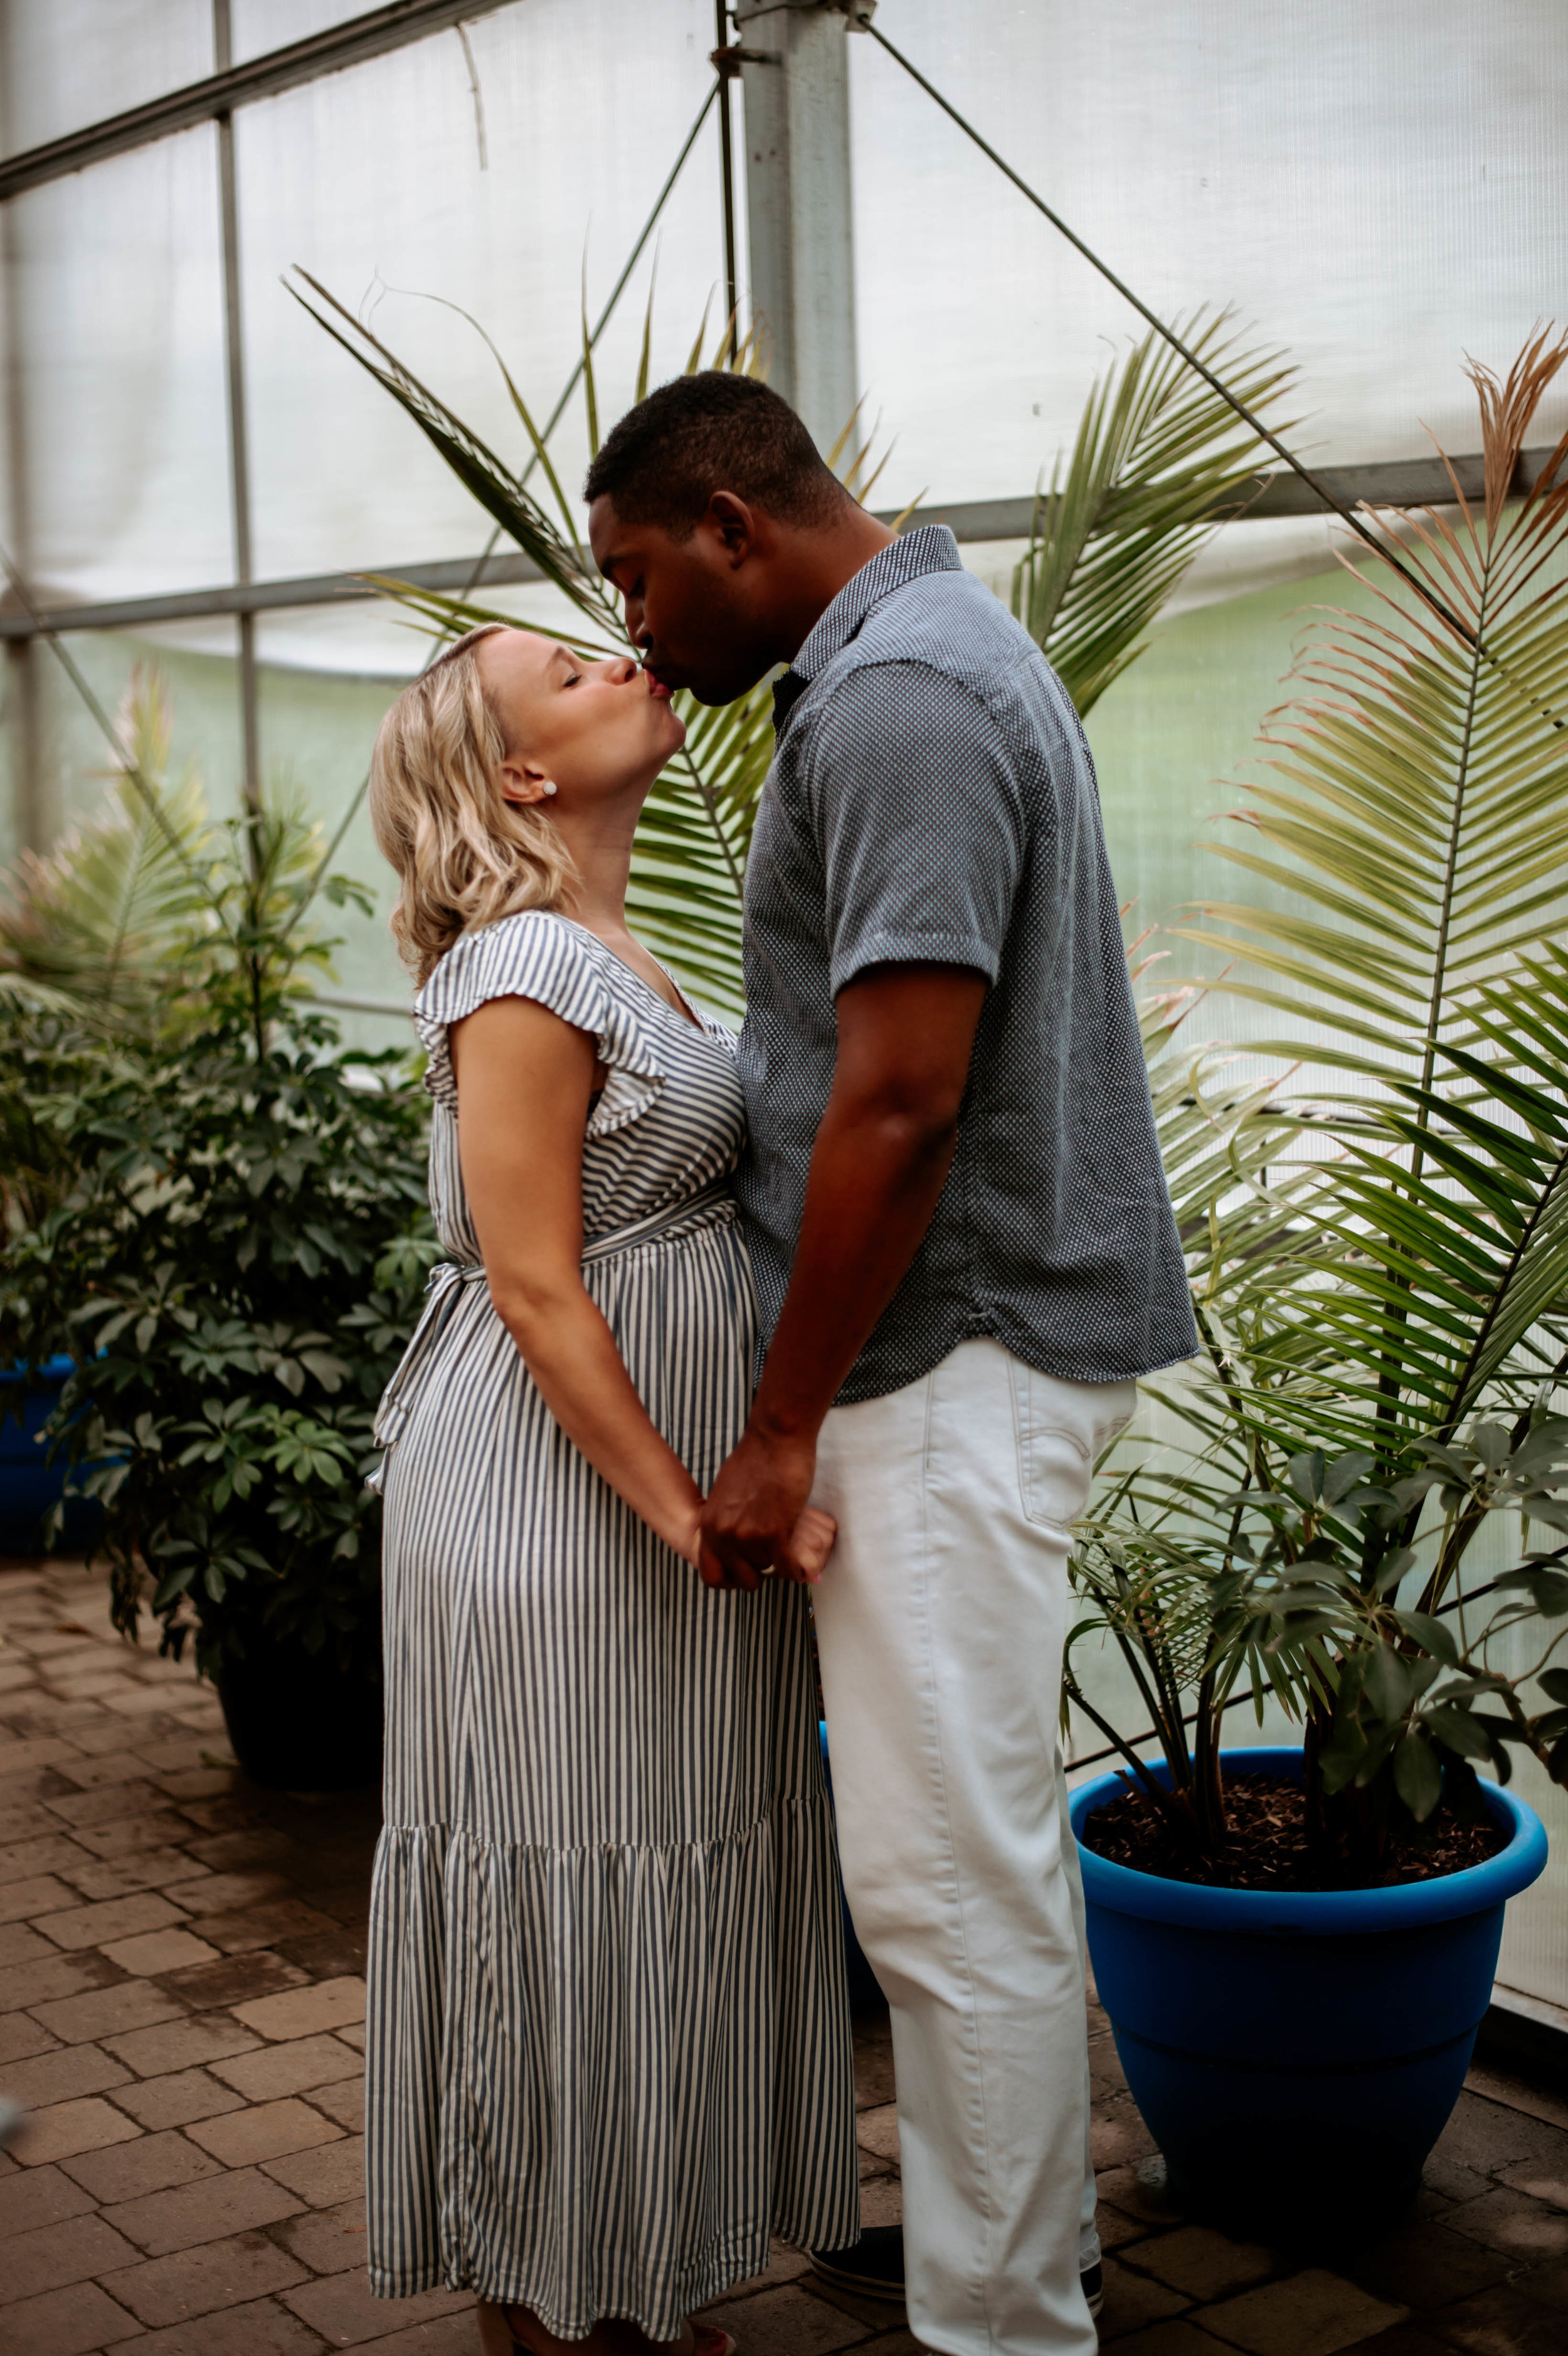 maternity session at the zoo-5.jpg